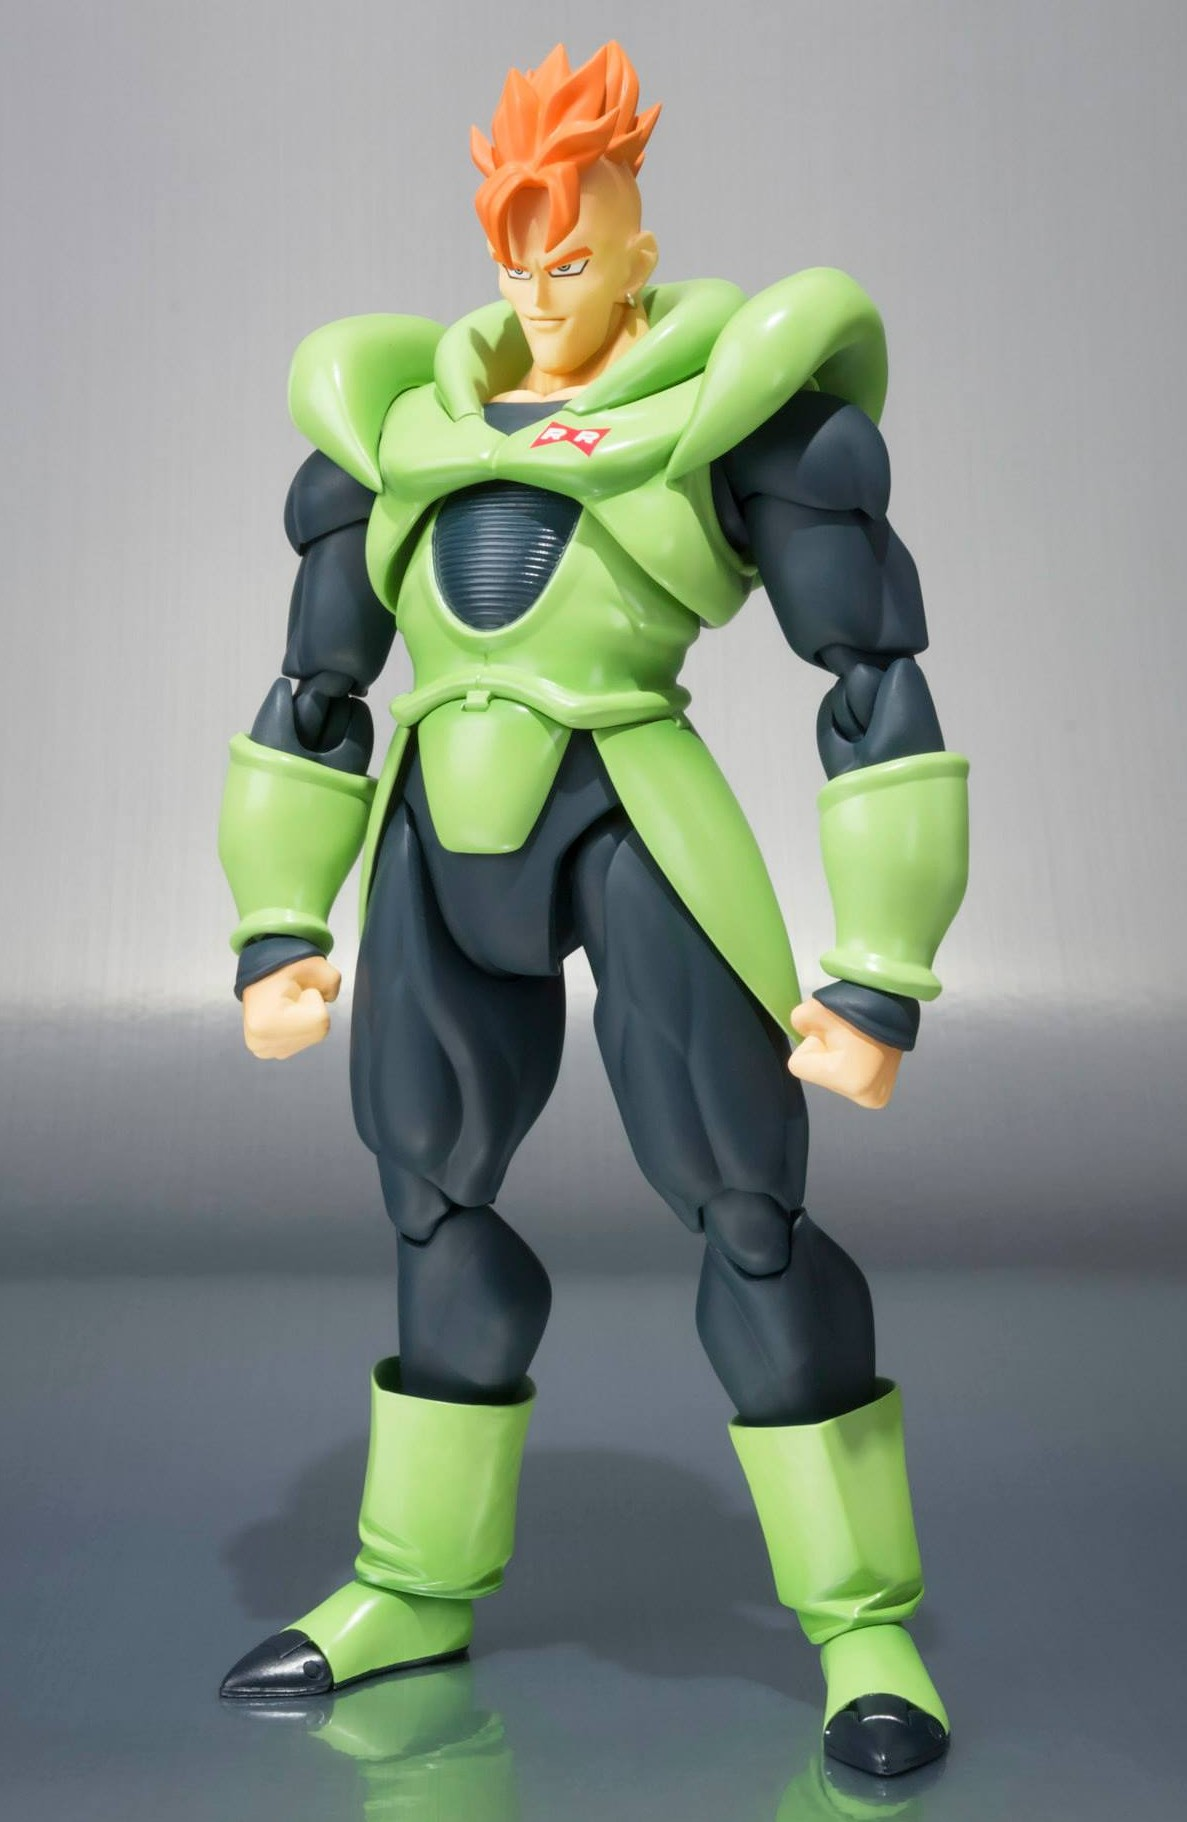 Dragon Ball Z Toys : Dragonball z sh figuarts android figure up for order